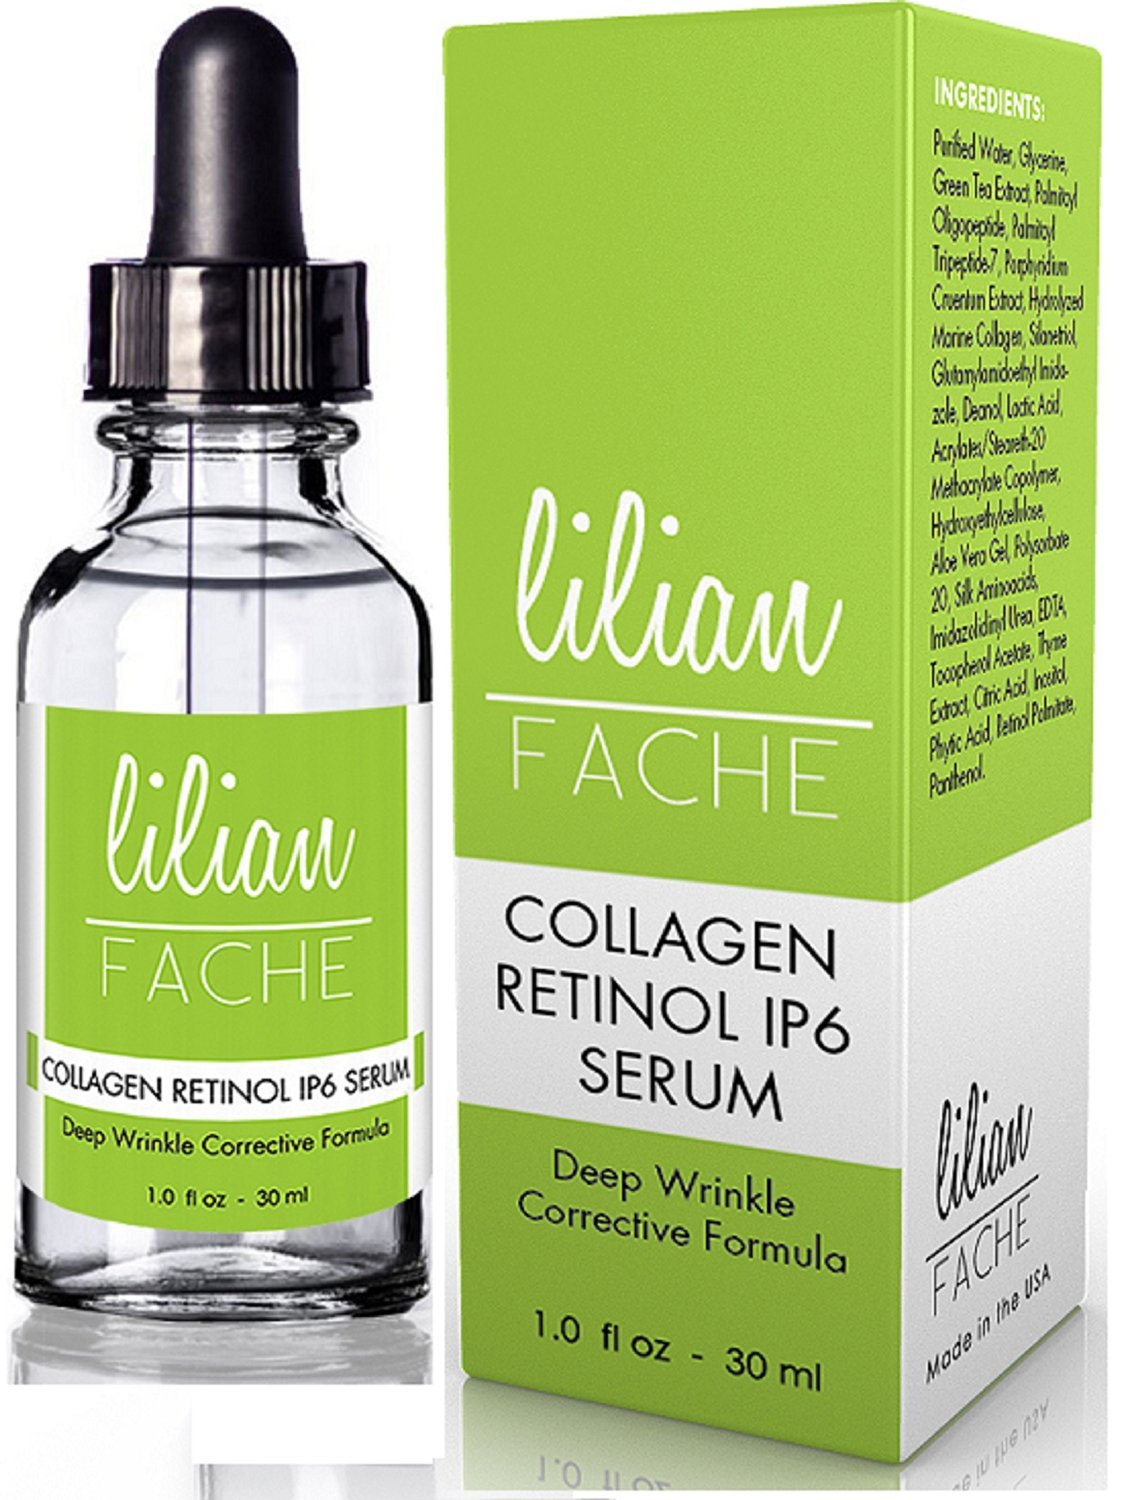 Retinol Anti Wrinkle Facial Serum for Men 1 oz (Pack of 6) Thoroughly Clean Face Wash with Tea Tree Oil and Awapuhi - 4 fl. oz. by Desert Essence (pack of 3)